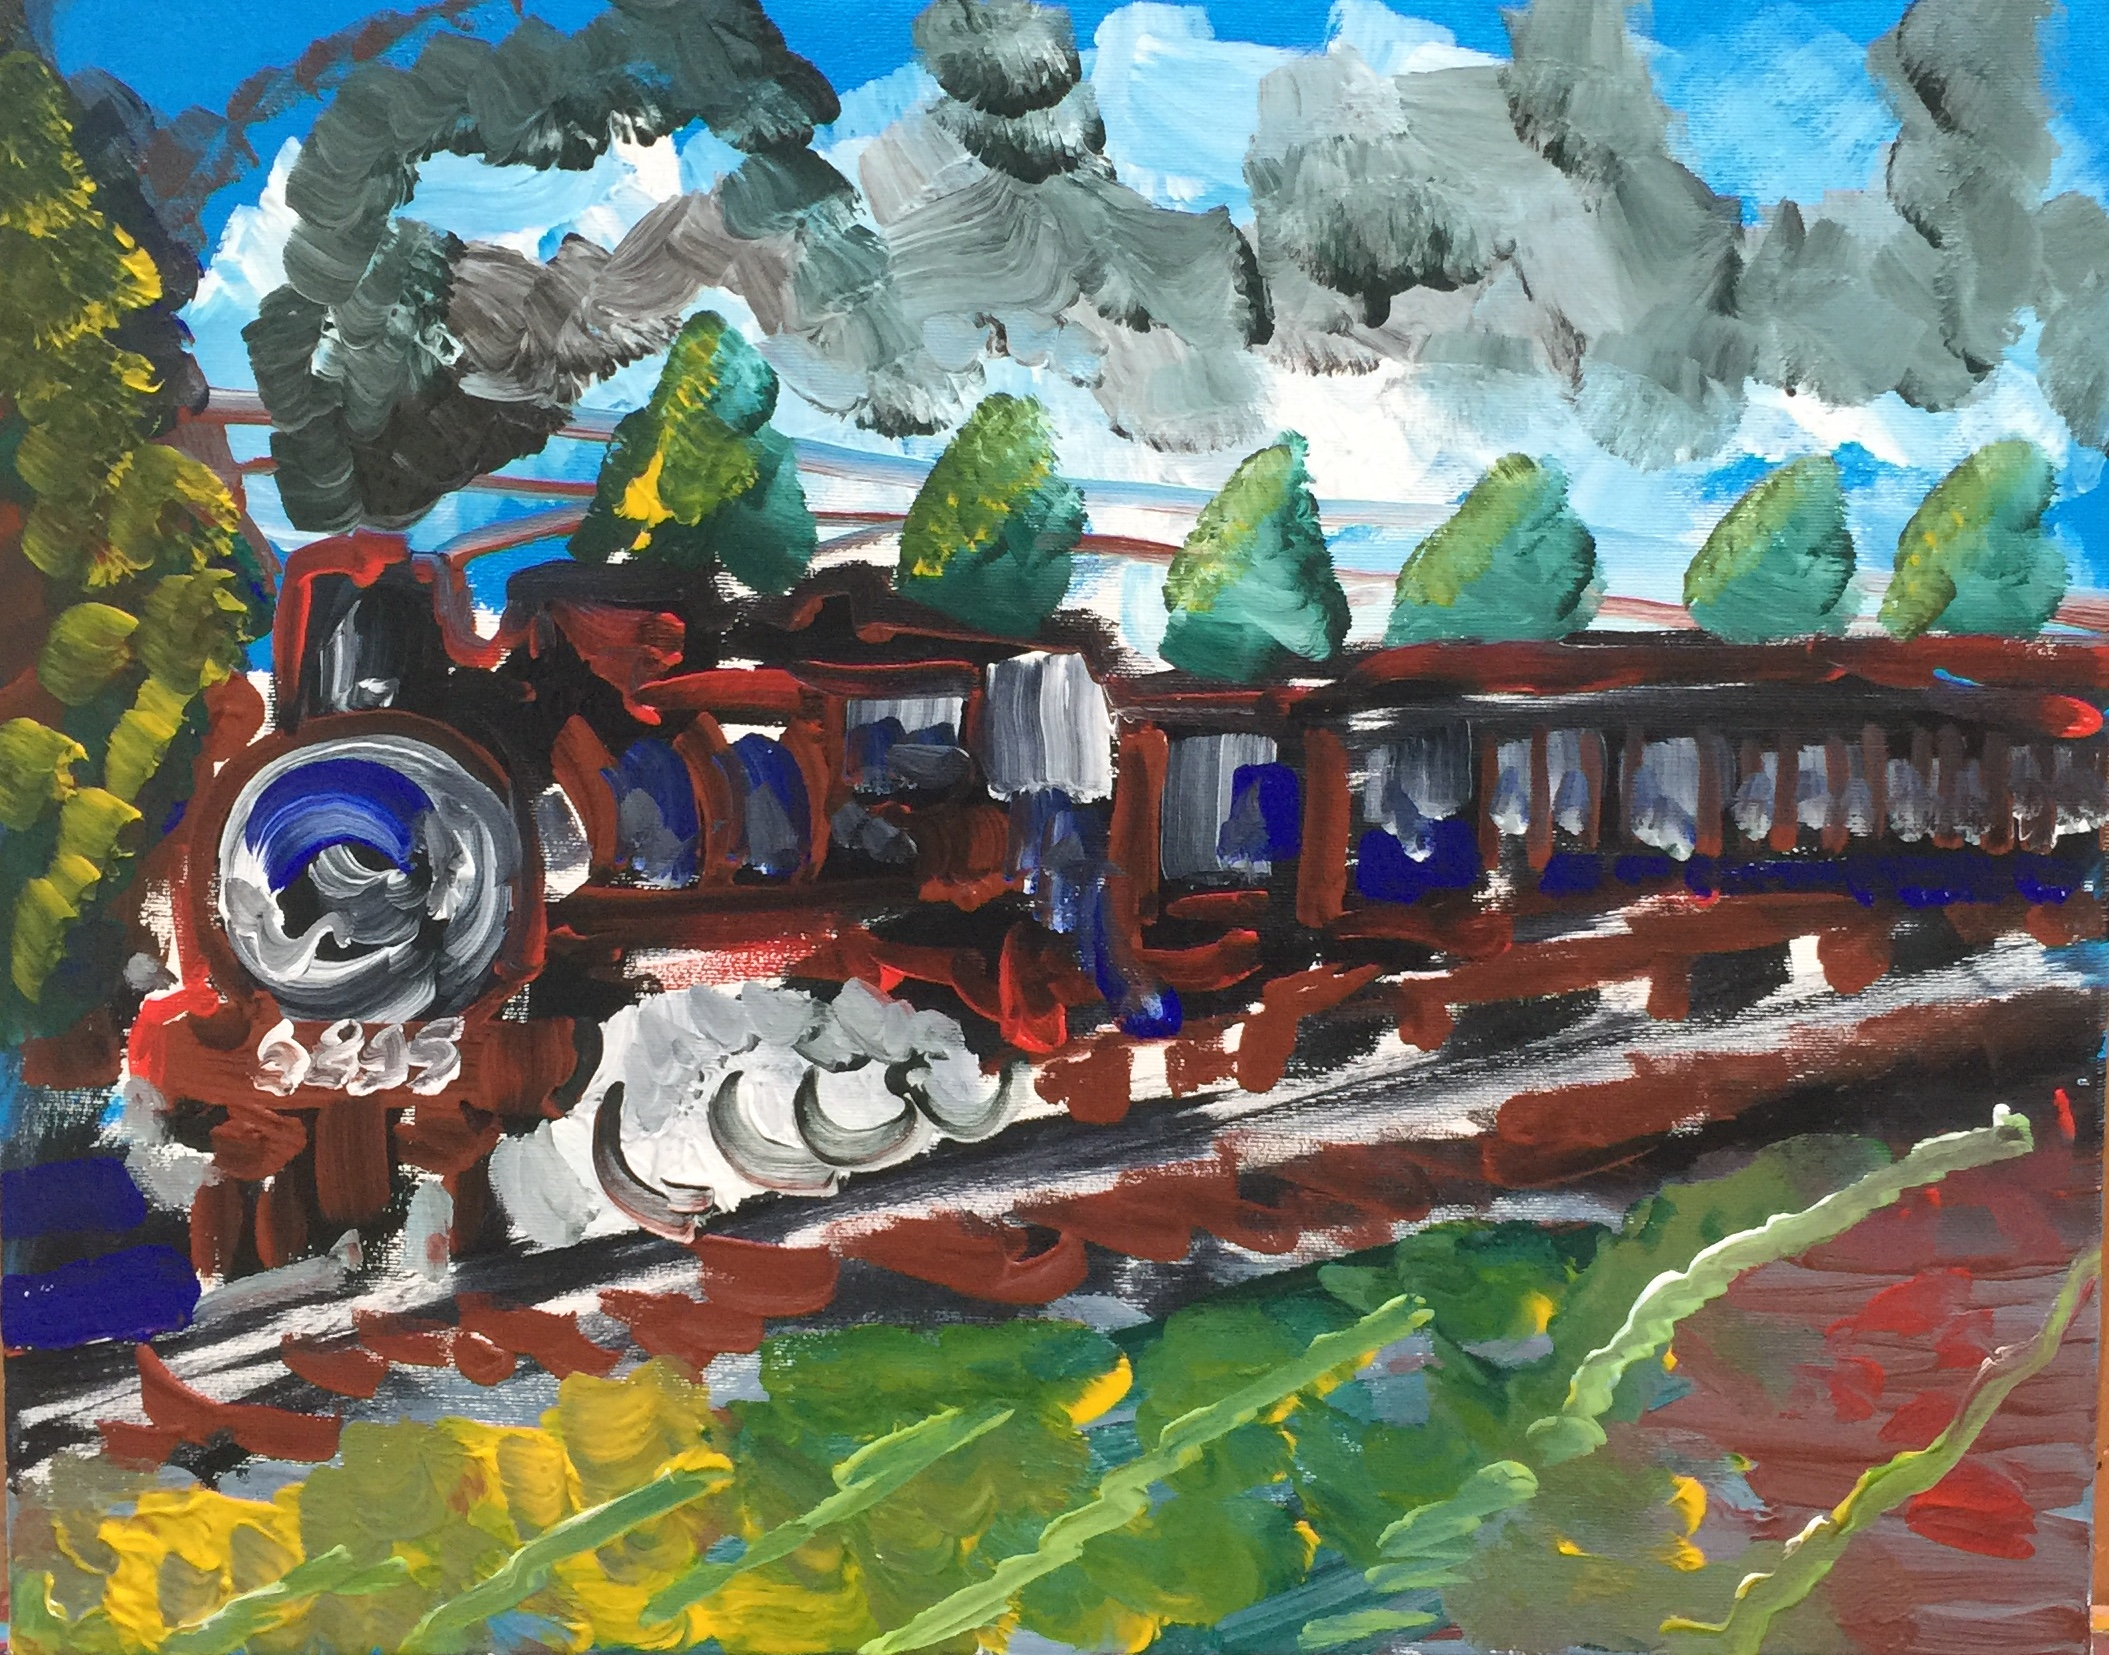 Train 6895 is leaving, acrylic on canvas, cm 40 x cm 50, Occhiobello, 2019,Private Collection